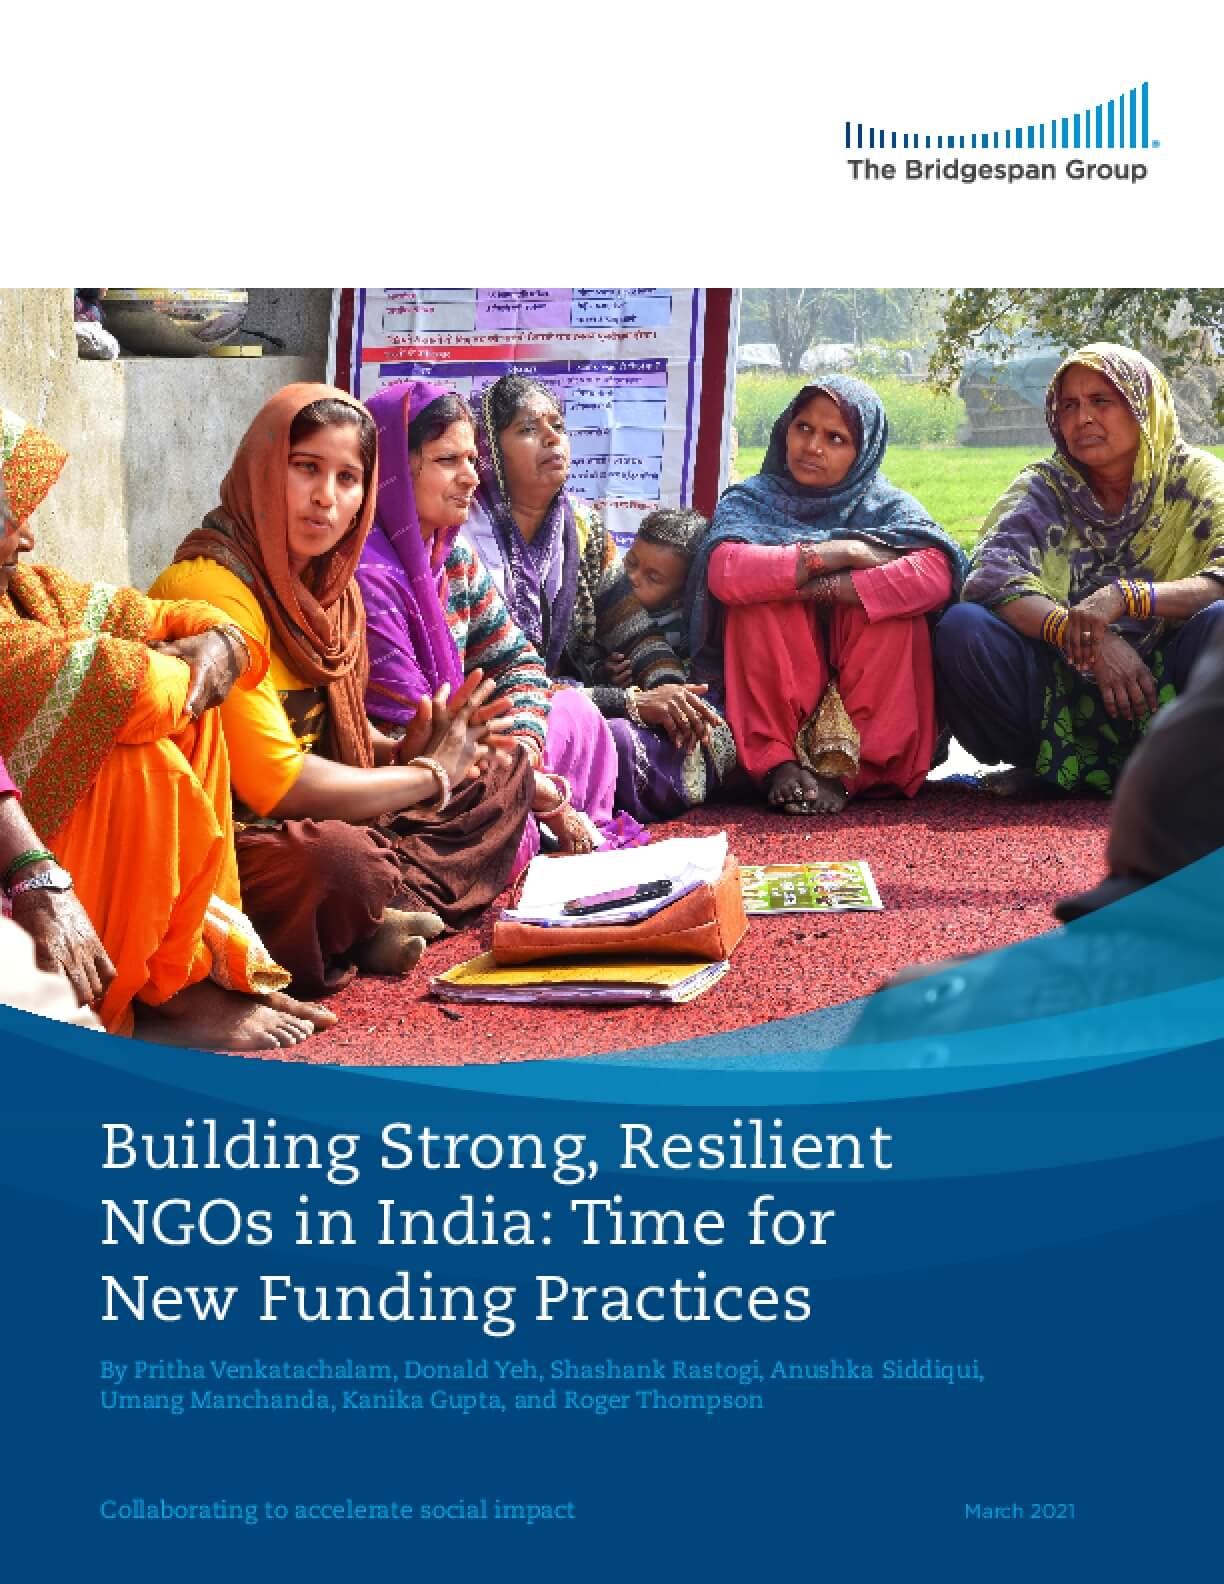 Building Strong, Resilient NGOs in India: Time for New Funding Practices